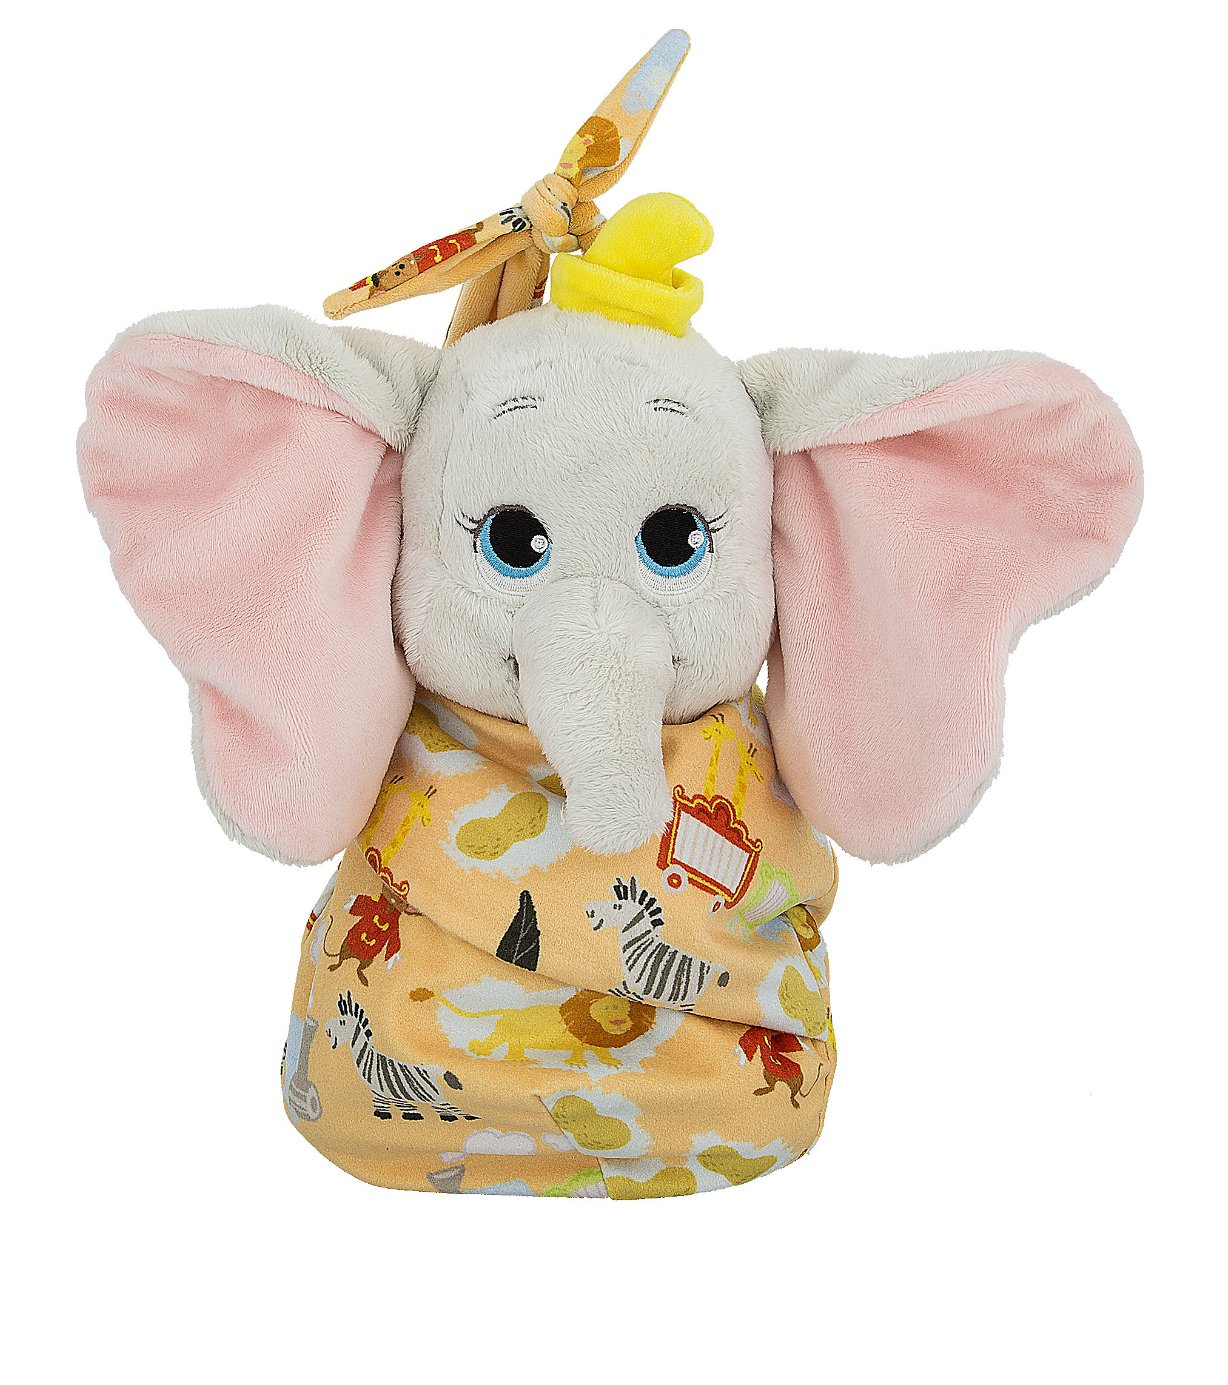 Disney Parks Baby Dumbo in a Pouch Blanket Plush Doll